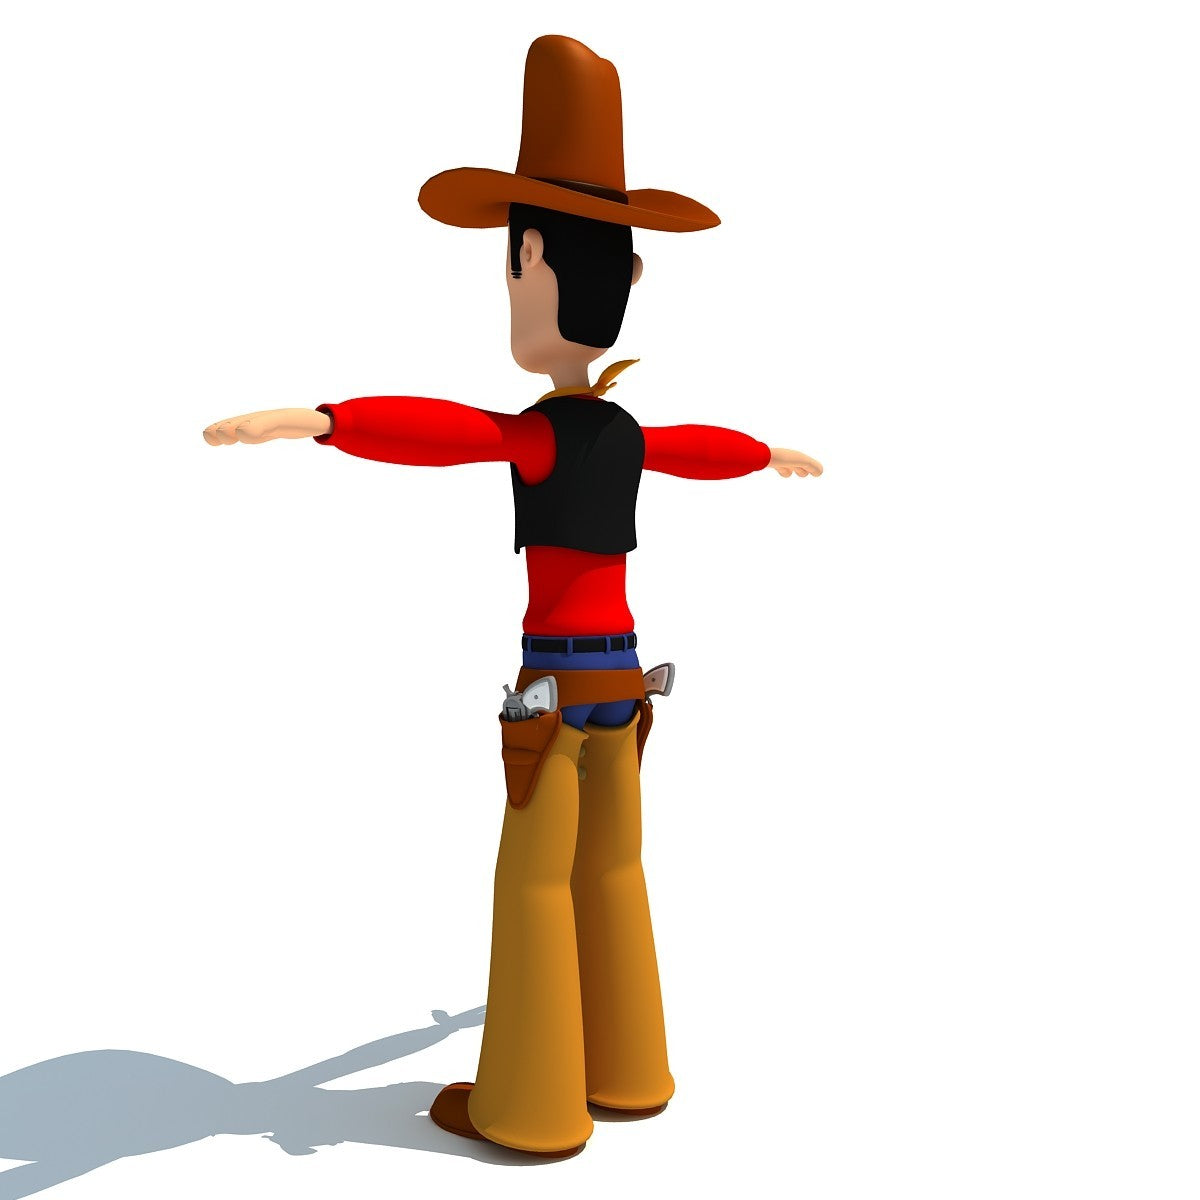 Rigged Cartoon Characters 3D Models